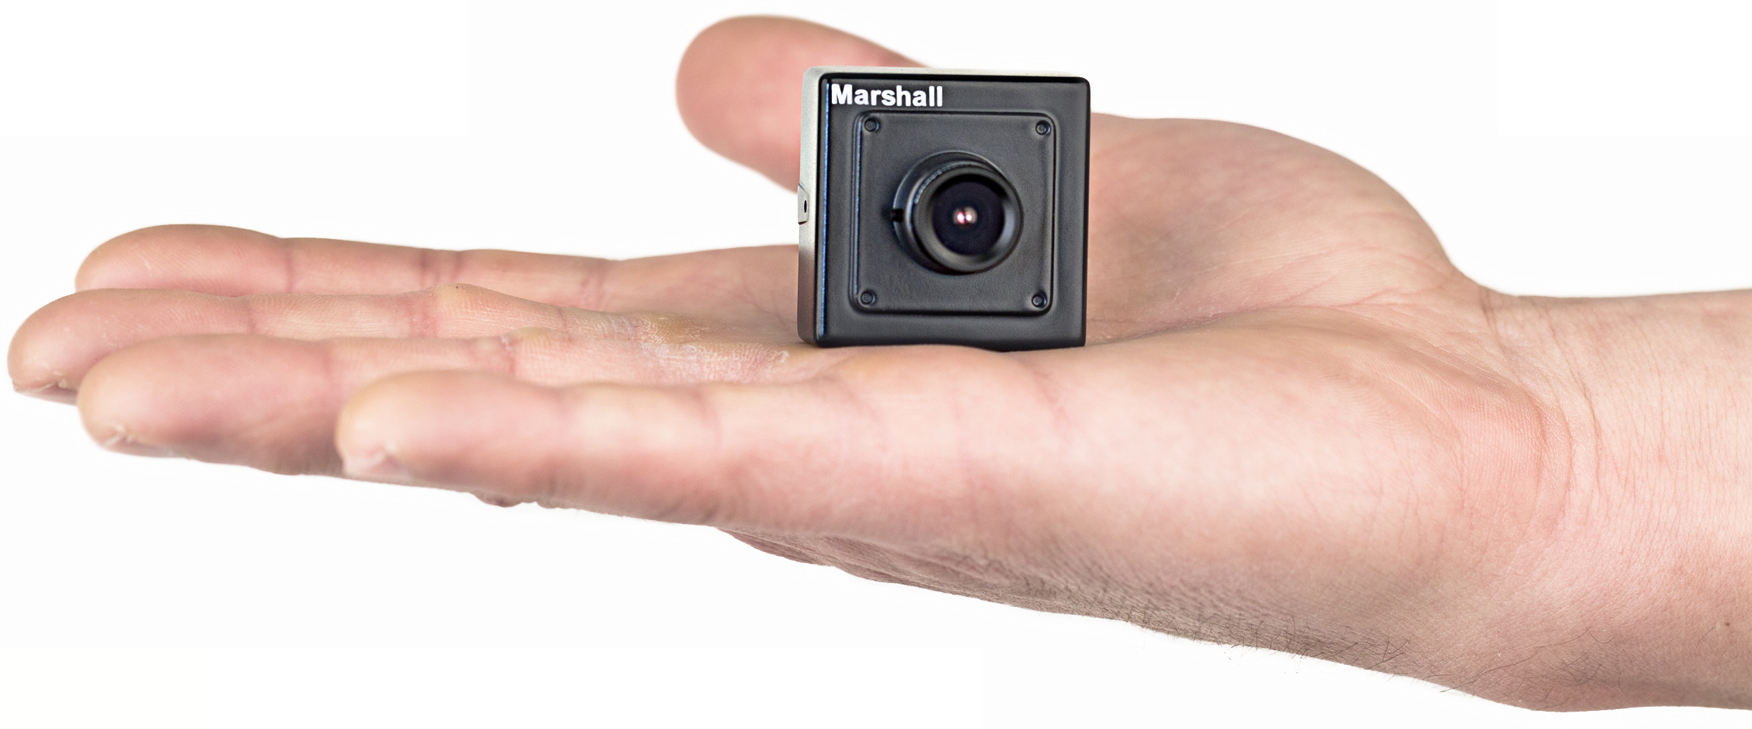 "Marshall Develops Low Cost ""Palm Size"" Broadcast HDSDI Camera 4"